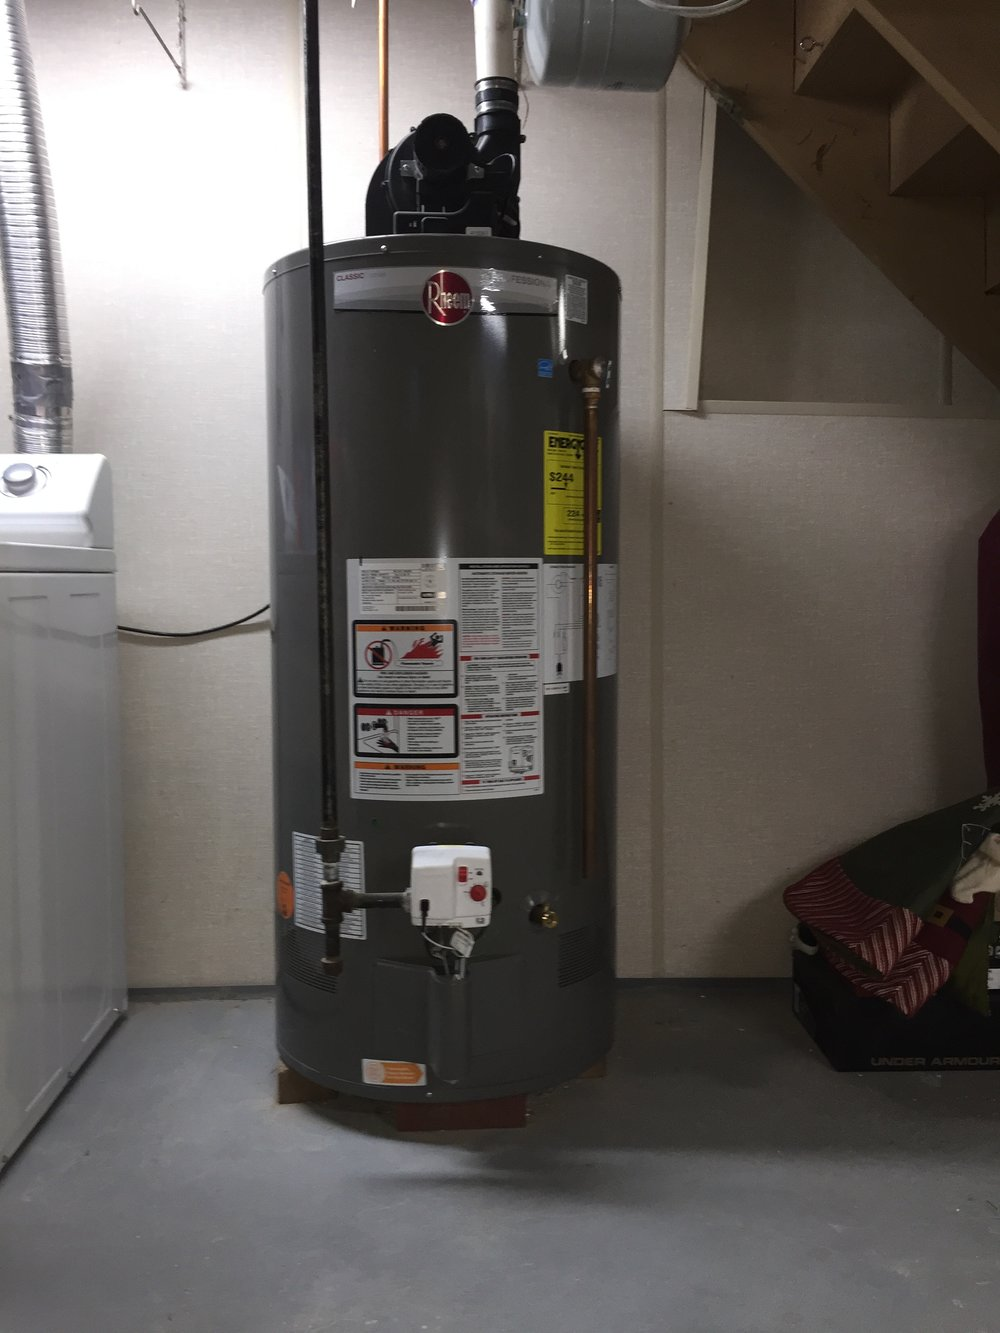 New hot water heater installation, with direct venting, replacing customer's existing unit and removing the need for a chimney flu. Installation and method of venting is more energy efficient and has reduced the customer's energy costs.